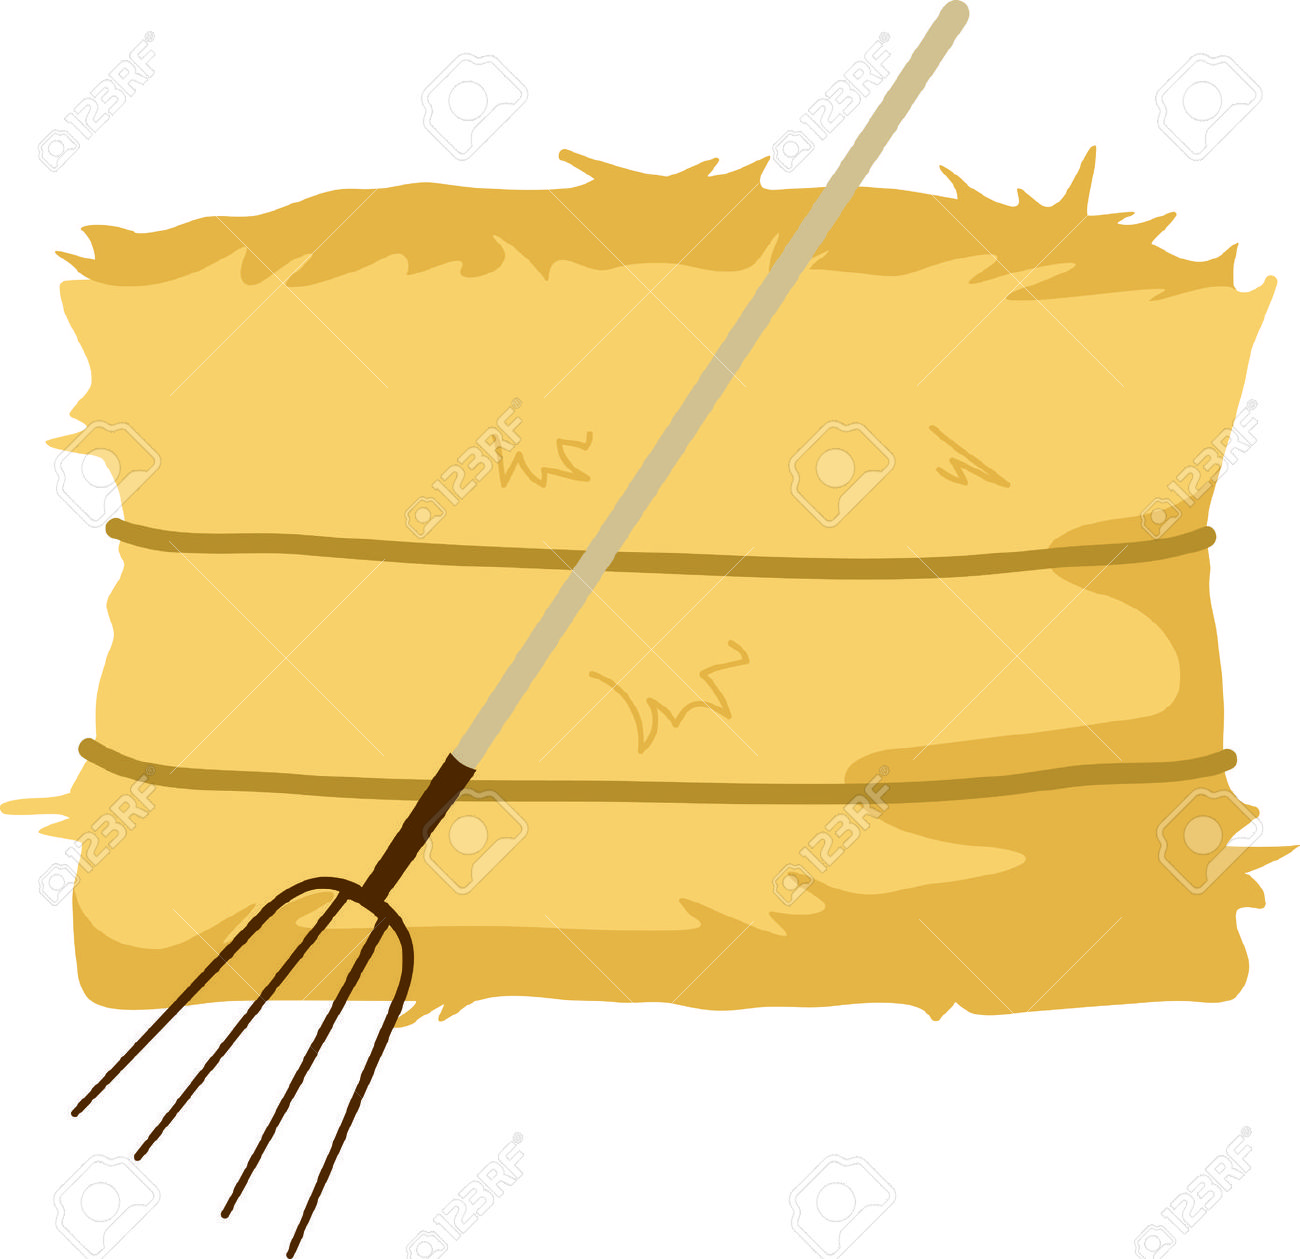 Clipart hay clipart stock Hay Bale Clipart | Free download best Hay Bale Clipart on ClipArtMag.com clipart stock